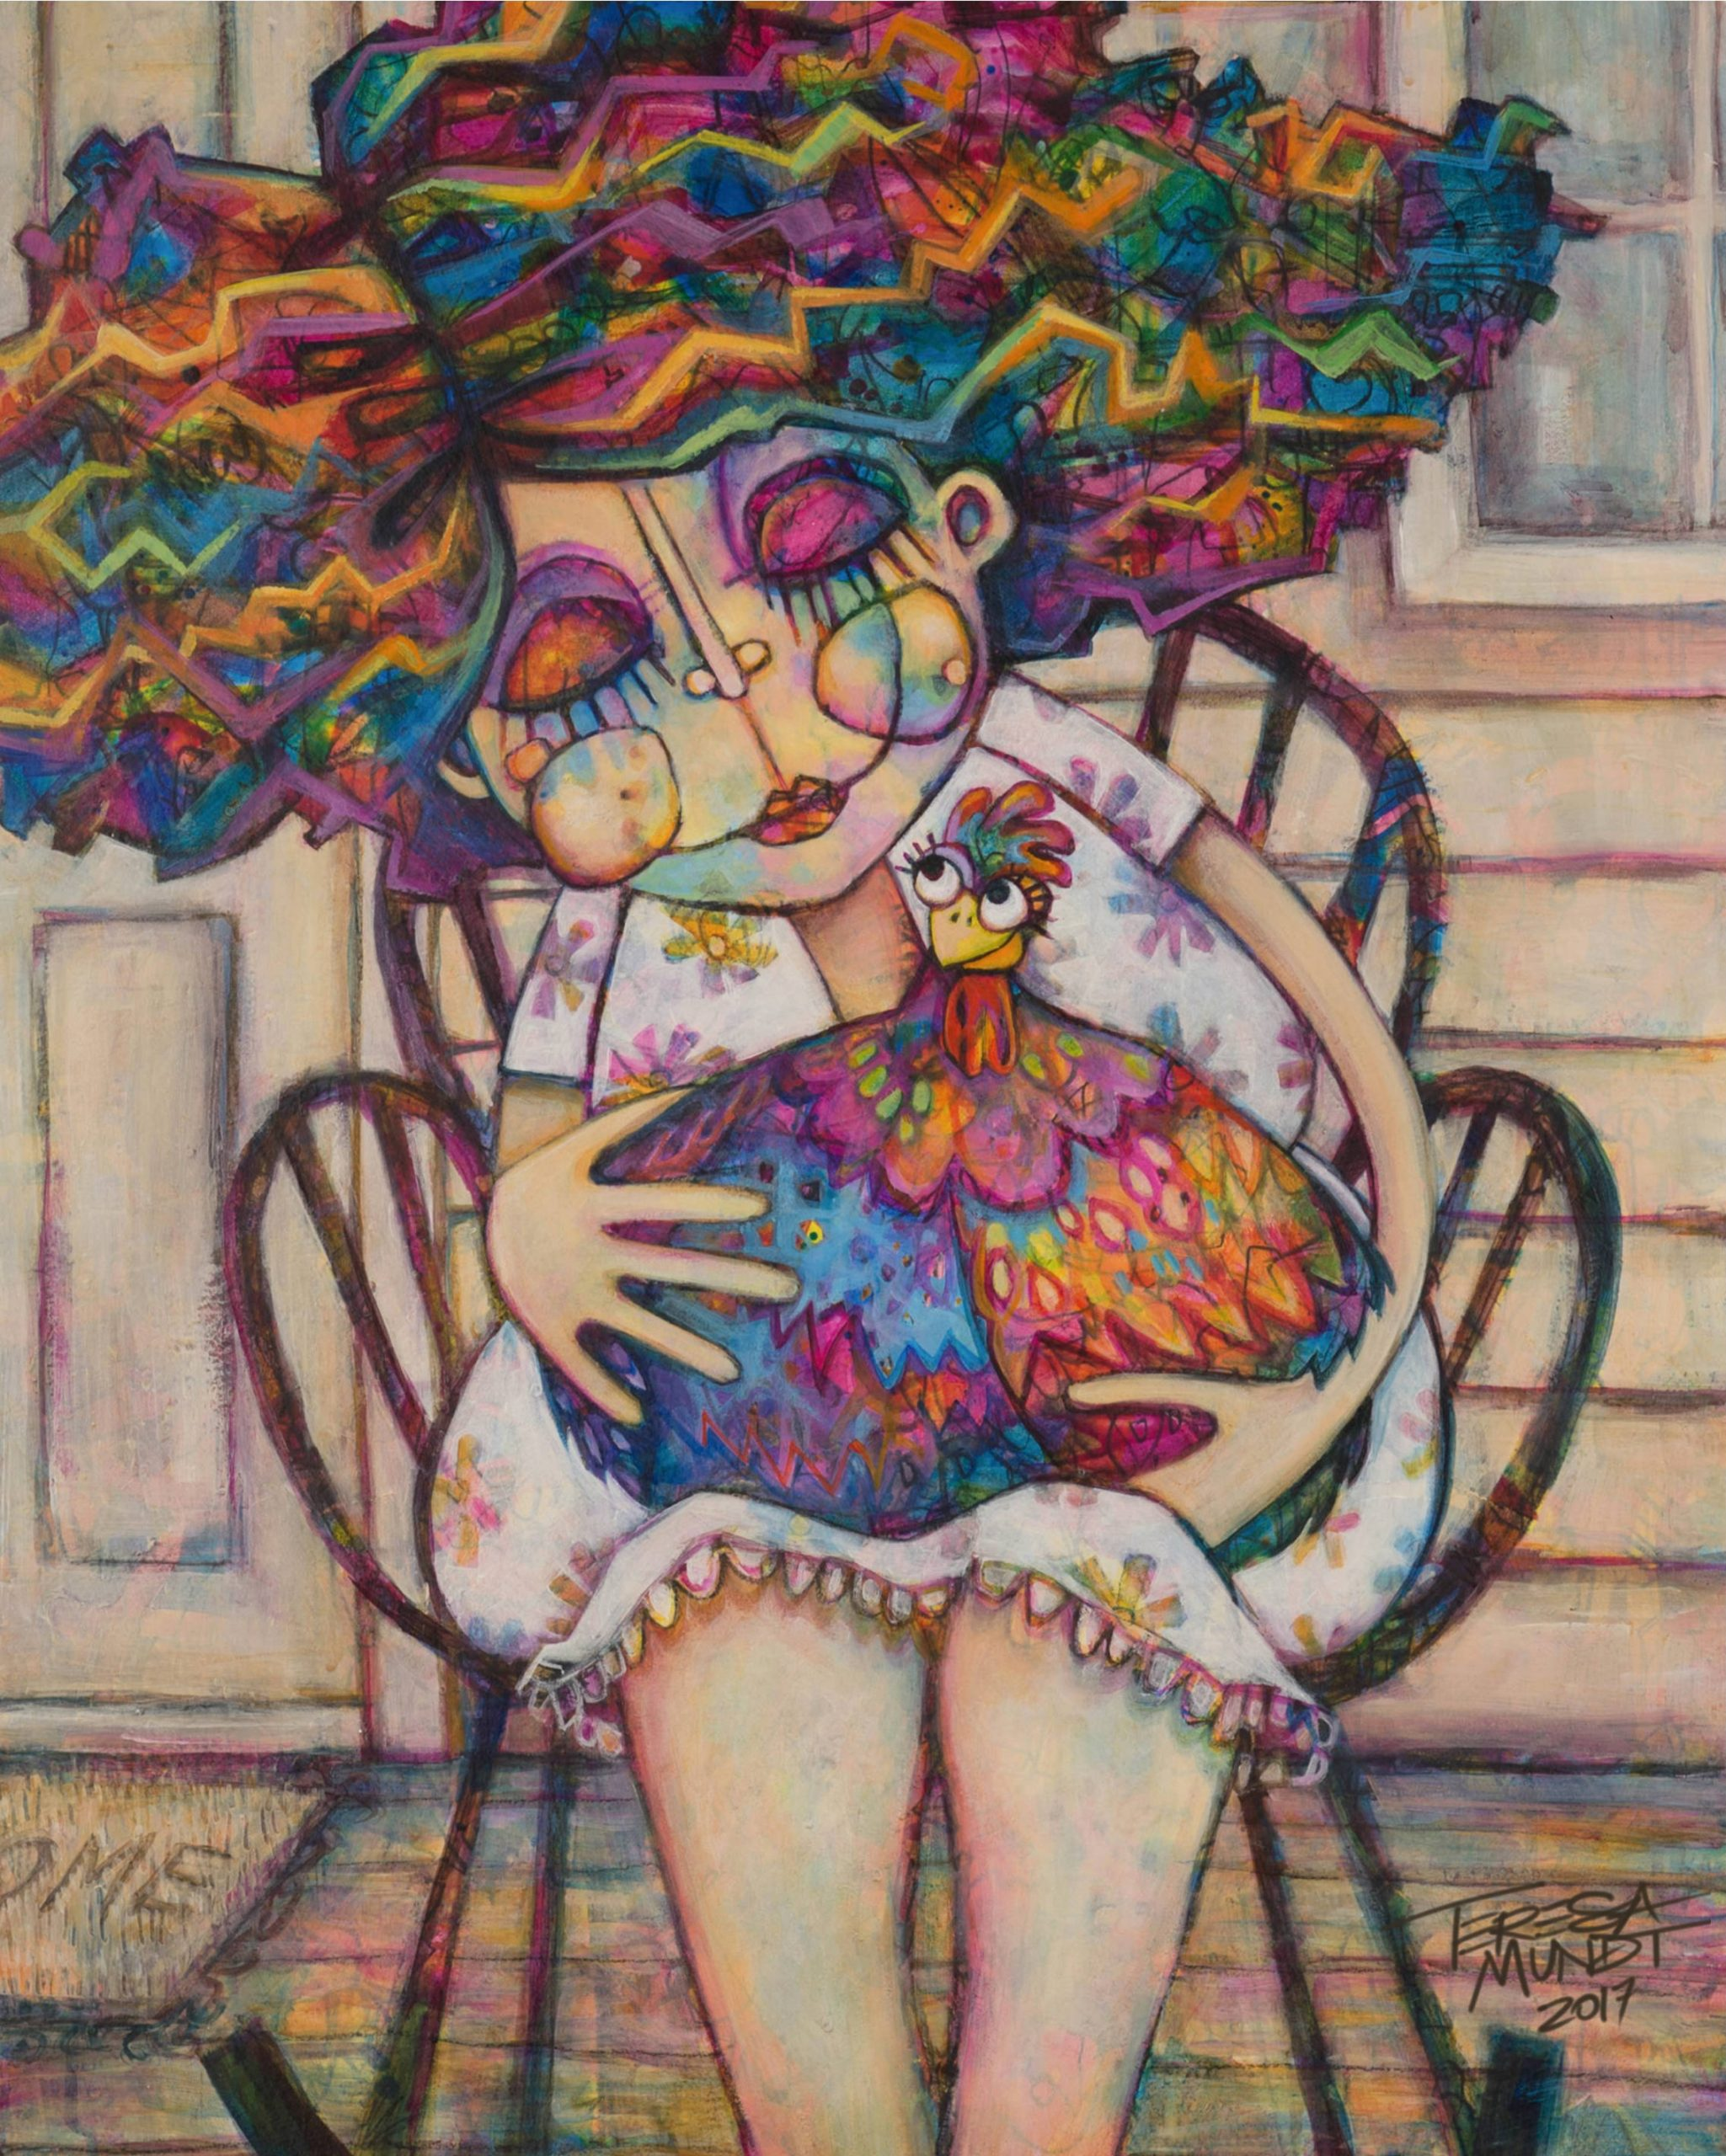 Betsy's Bestie By Teresa Mundt Colourful Colorful Chicken Chook Lady Quirky Art Painting